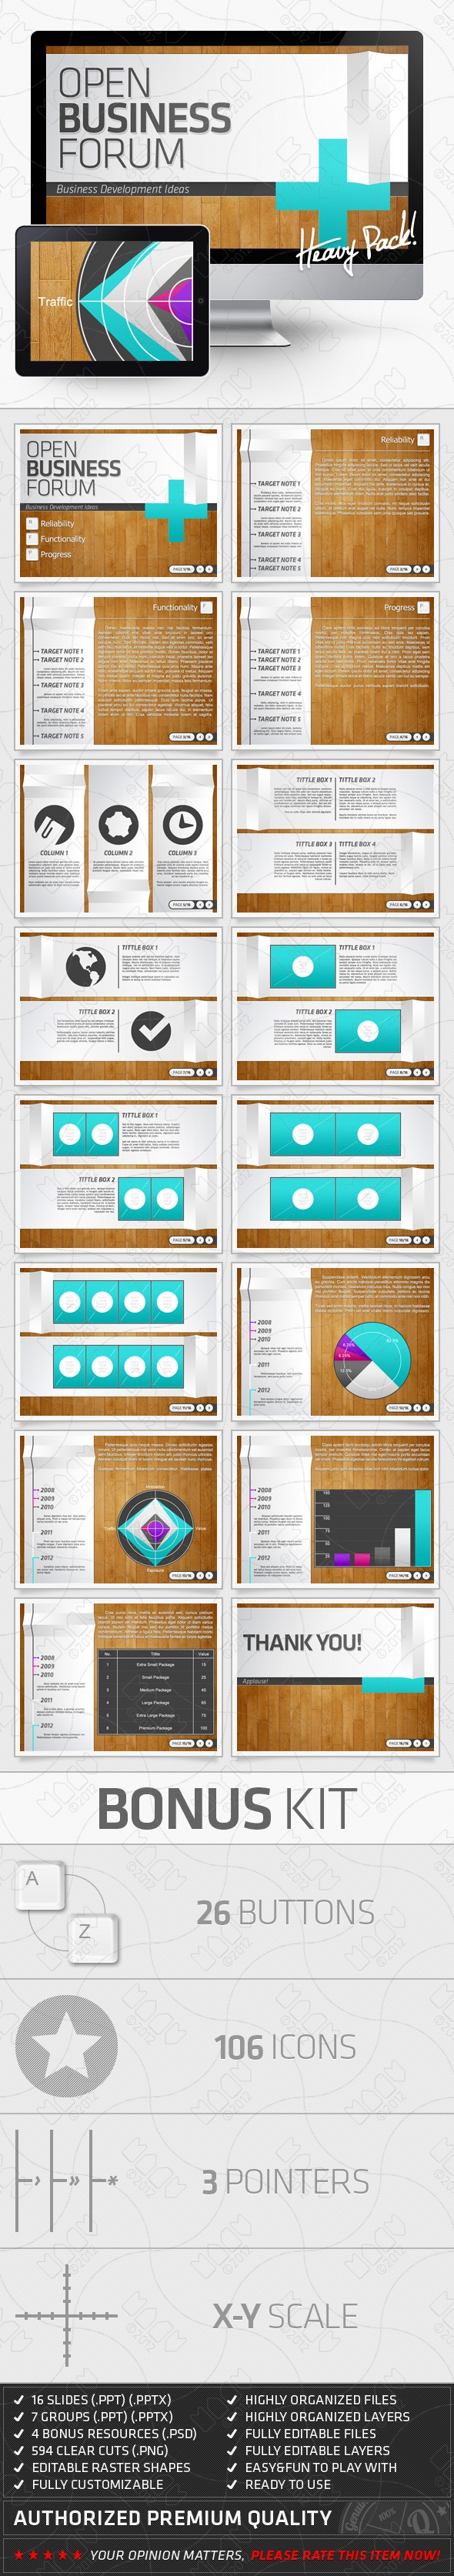 74 best powerpoint images on pinterest editorial design page presentation powerpoint templates from graphicriver toneelgroepblik Gallery